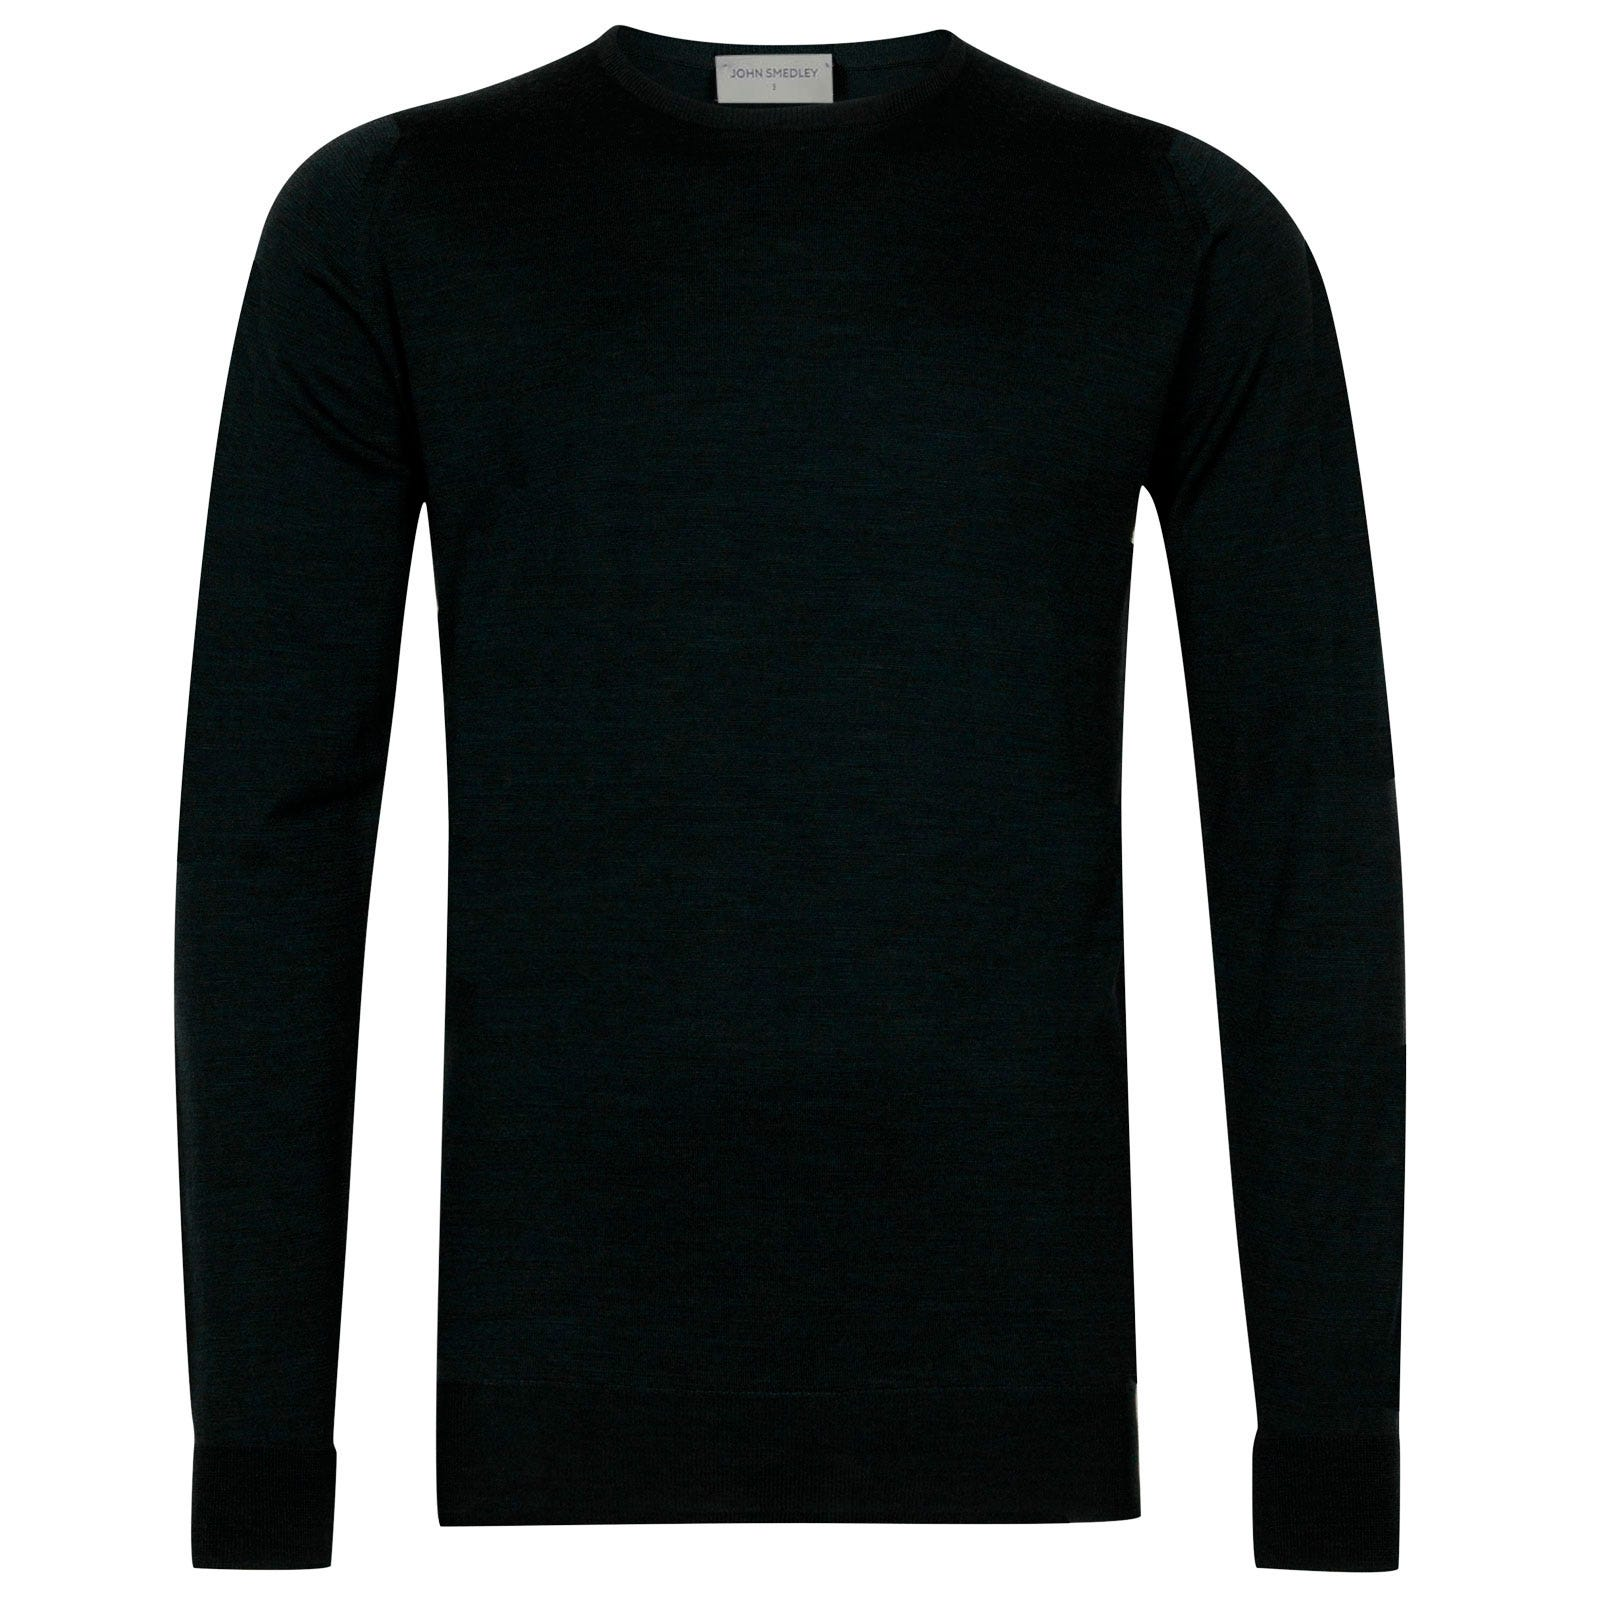 John Smedley Marcus Merino Wool Pullover in Racing Green-XL